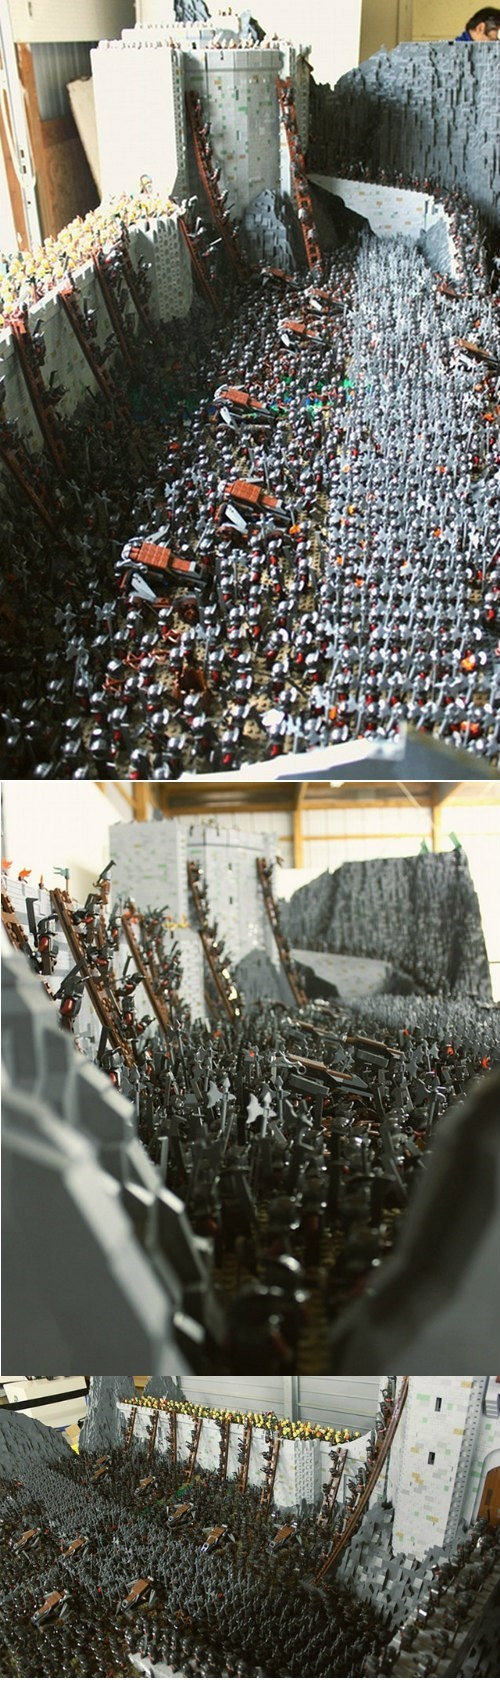 lego Lord of the Rings nerdgasm funny g rated win - 7435848704